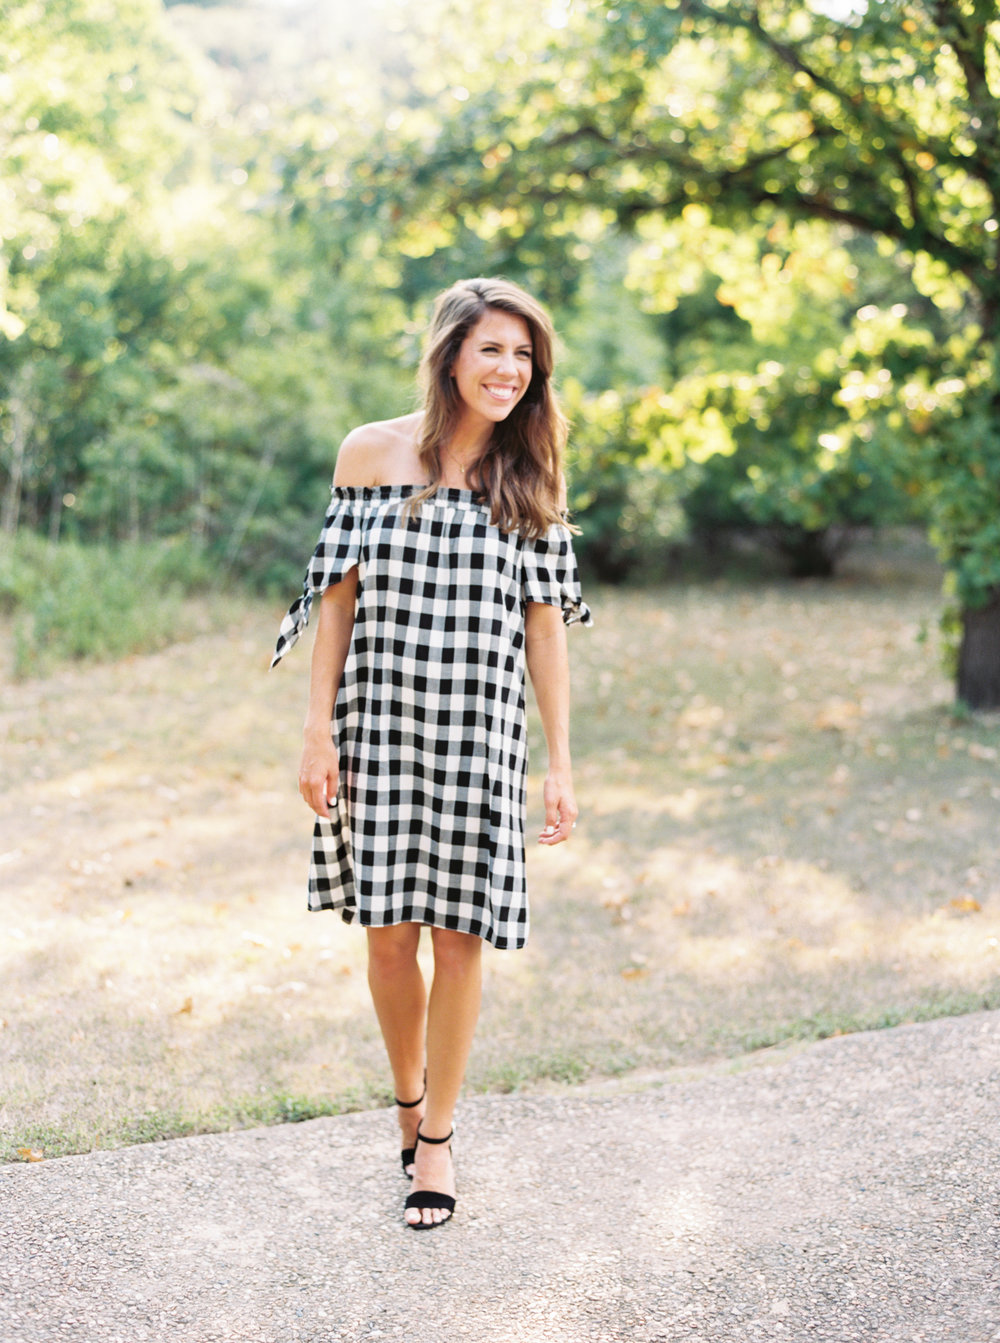 Engagement Session Outfits-129.jpg